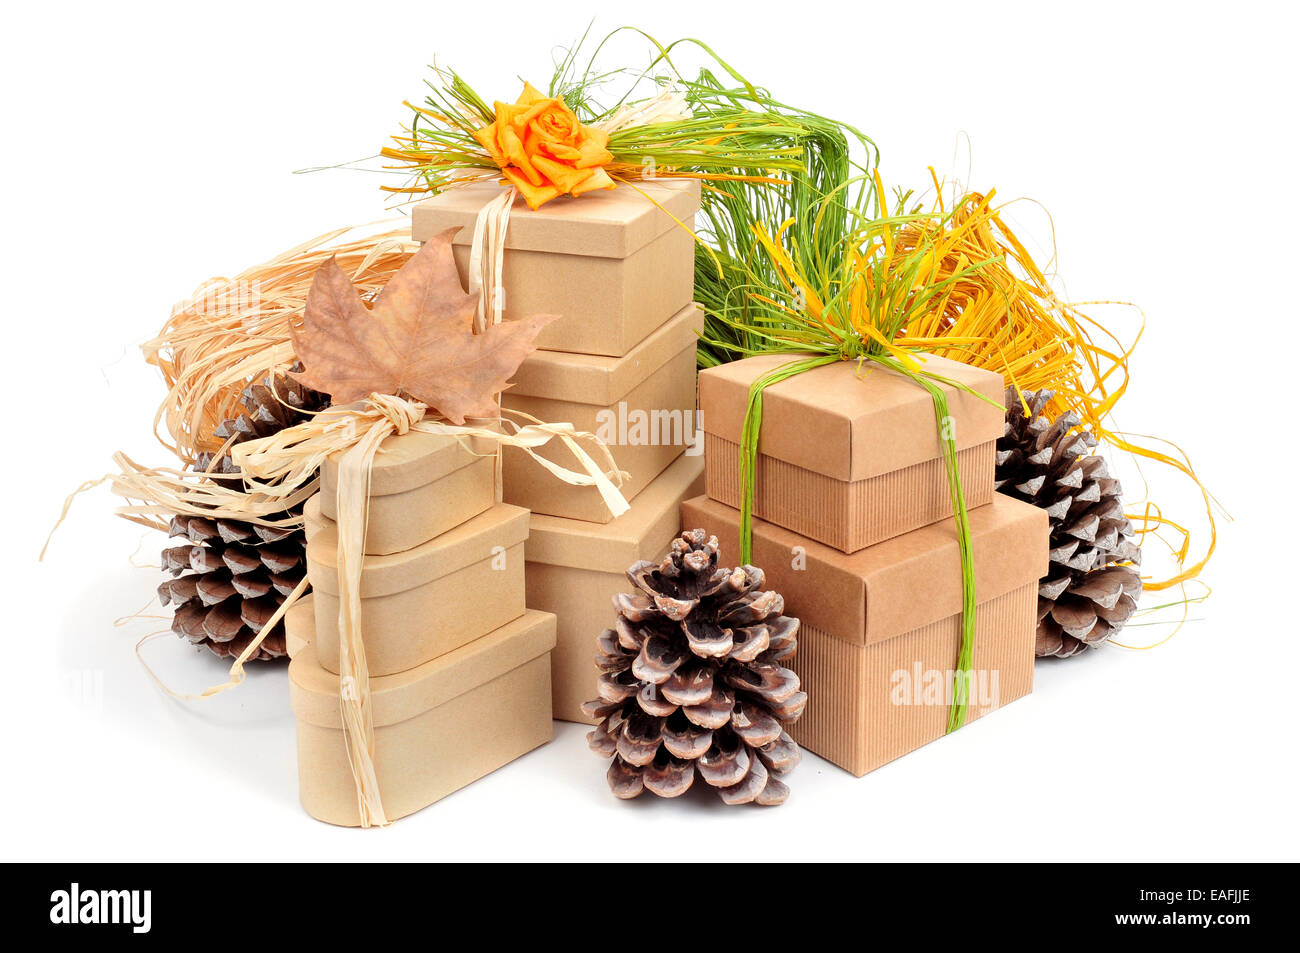 some gift boxes tied with natural raffia of different colors and surrounded by natural ornaments such as pinecones - Stock Image